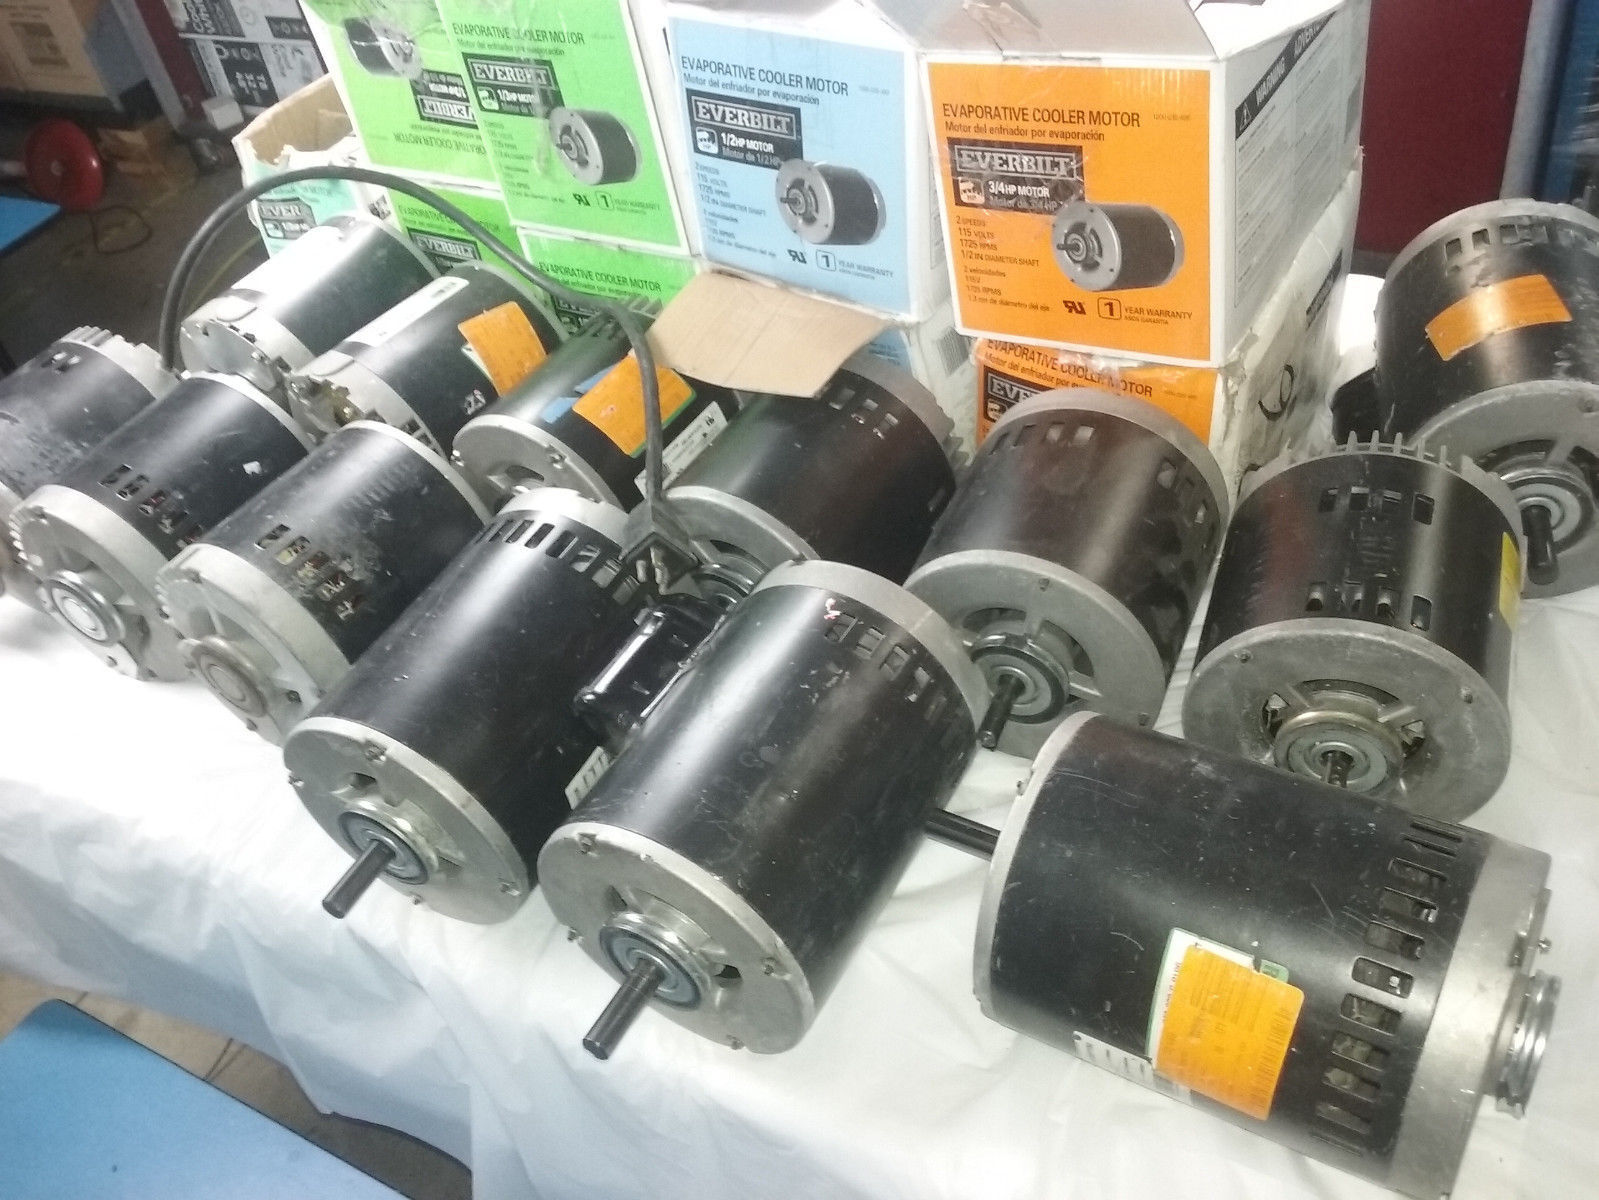 Everbilt 2 Speed Motor Lot Of 22 A250, A370, A550, A750 Untested Parts Only image 3